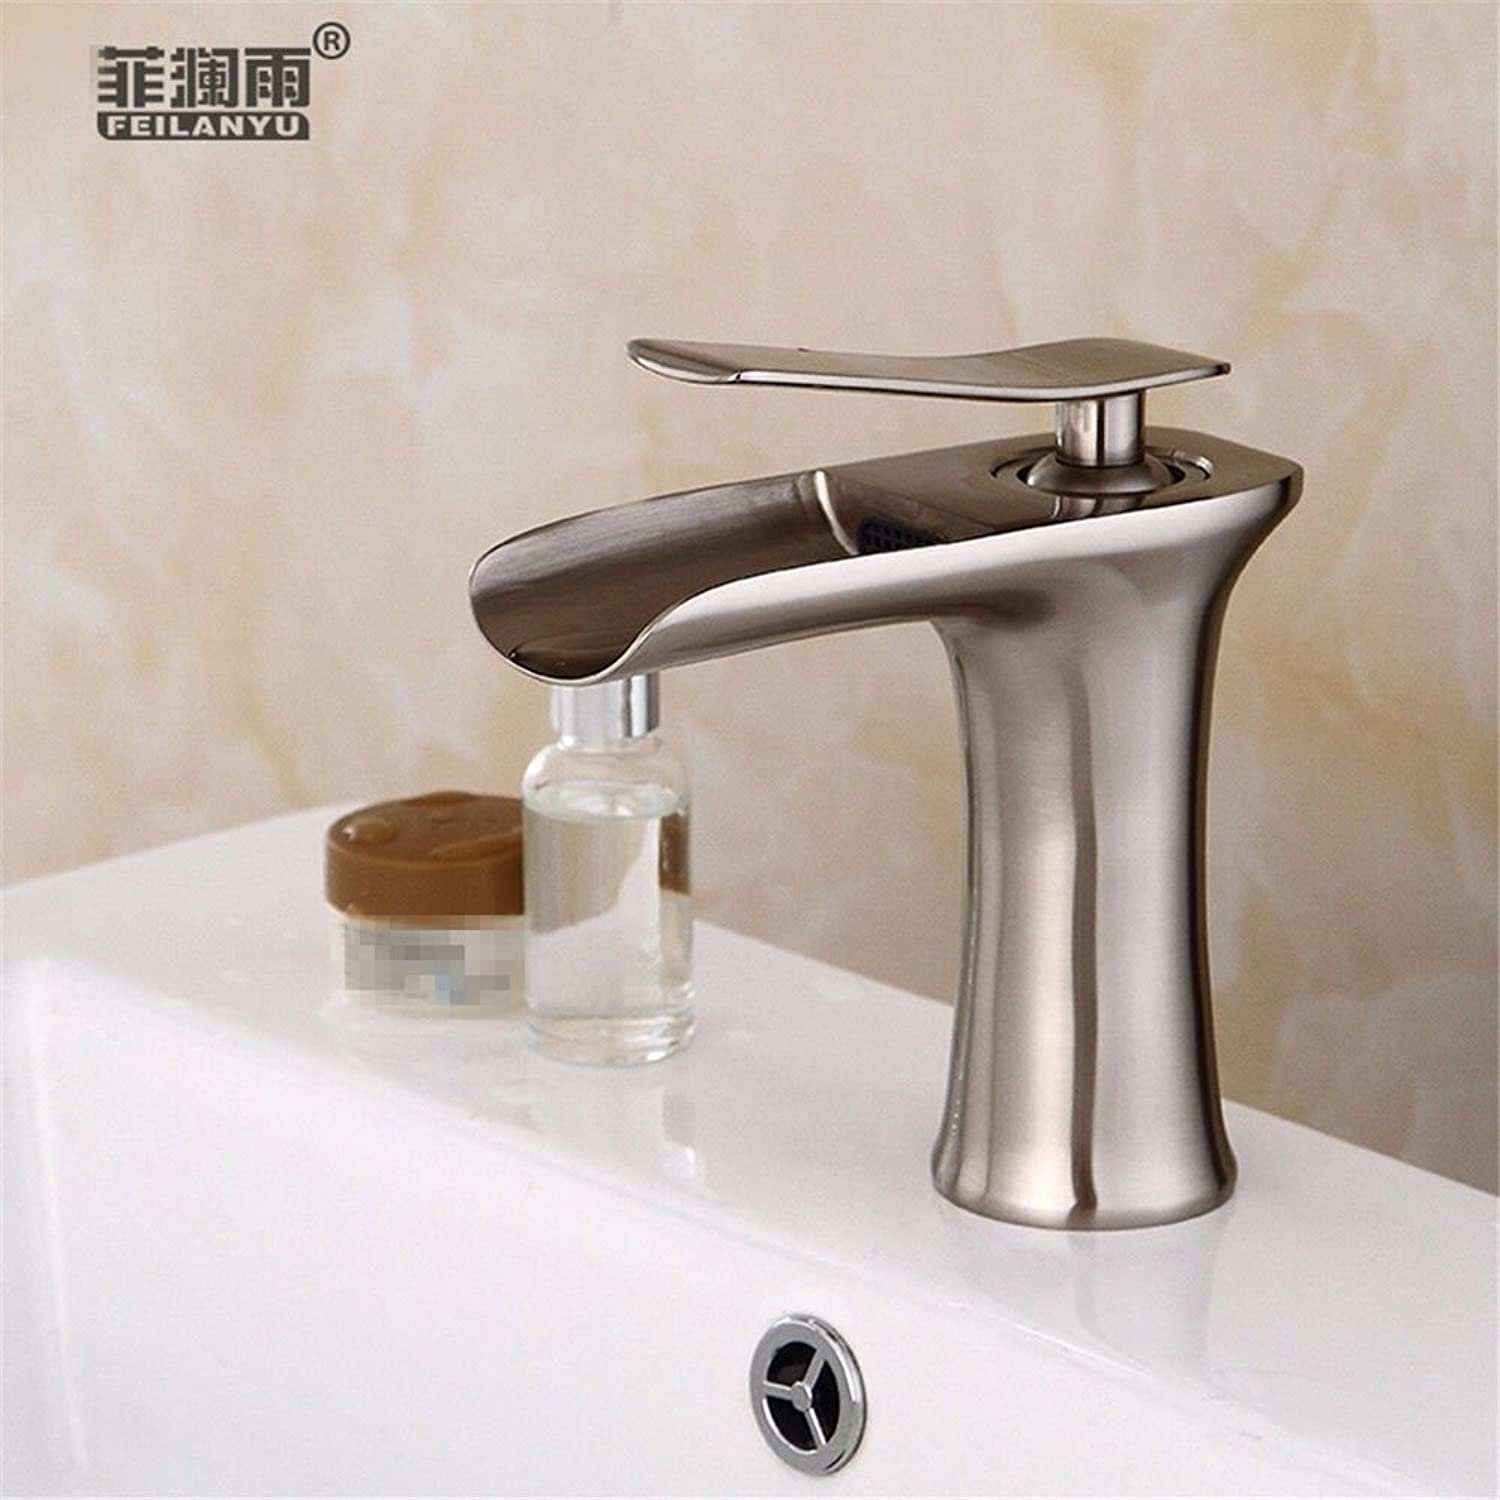 Bathroom Sink Faucets Bathroom Fixtures Hlluya Professional Sink Mixer Tap Kitchen Faucet Hot and Cold Single Hole Basin Mixer Basin Mixer Third Gear Out of The Water-Cooled Heat Sink Basin Mixer